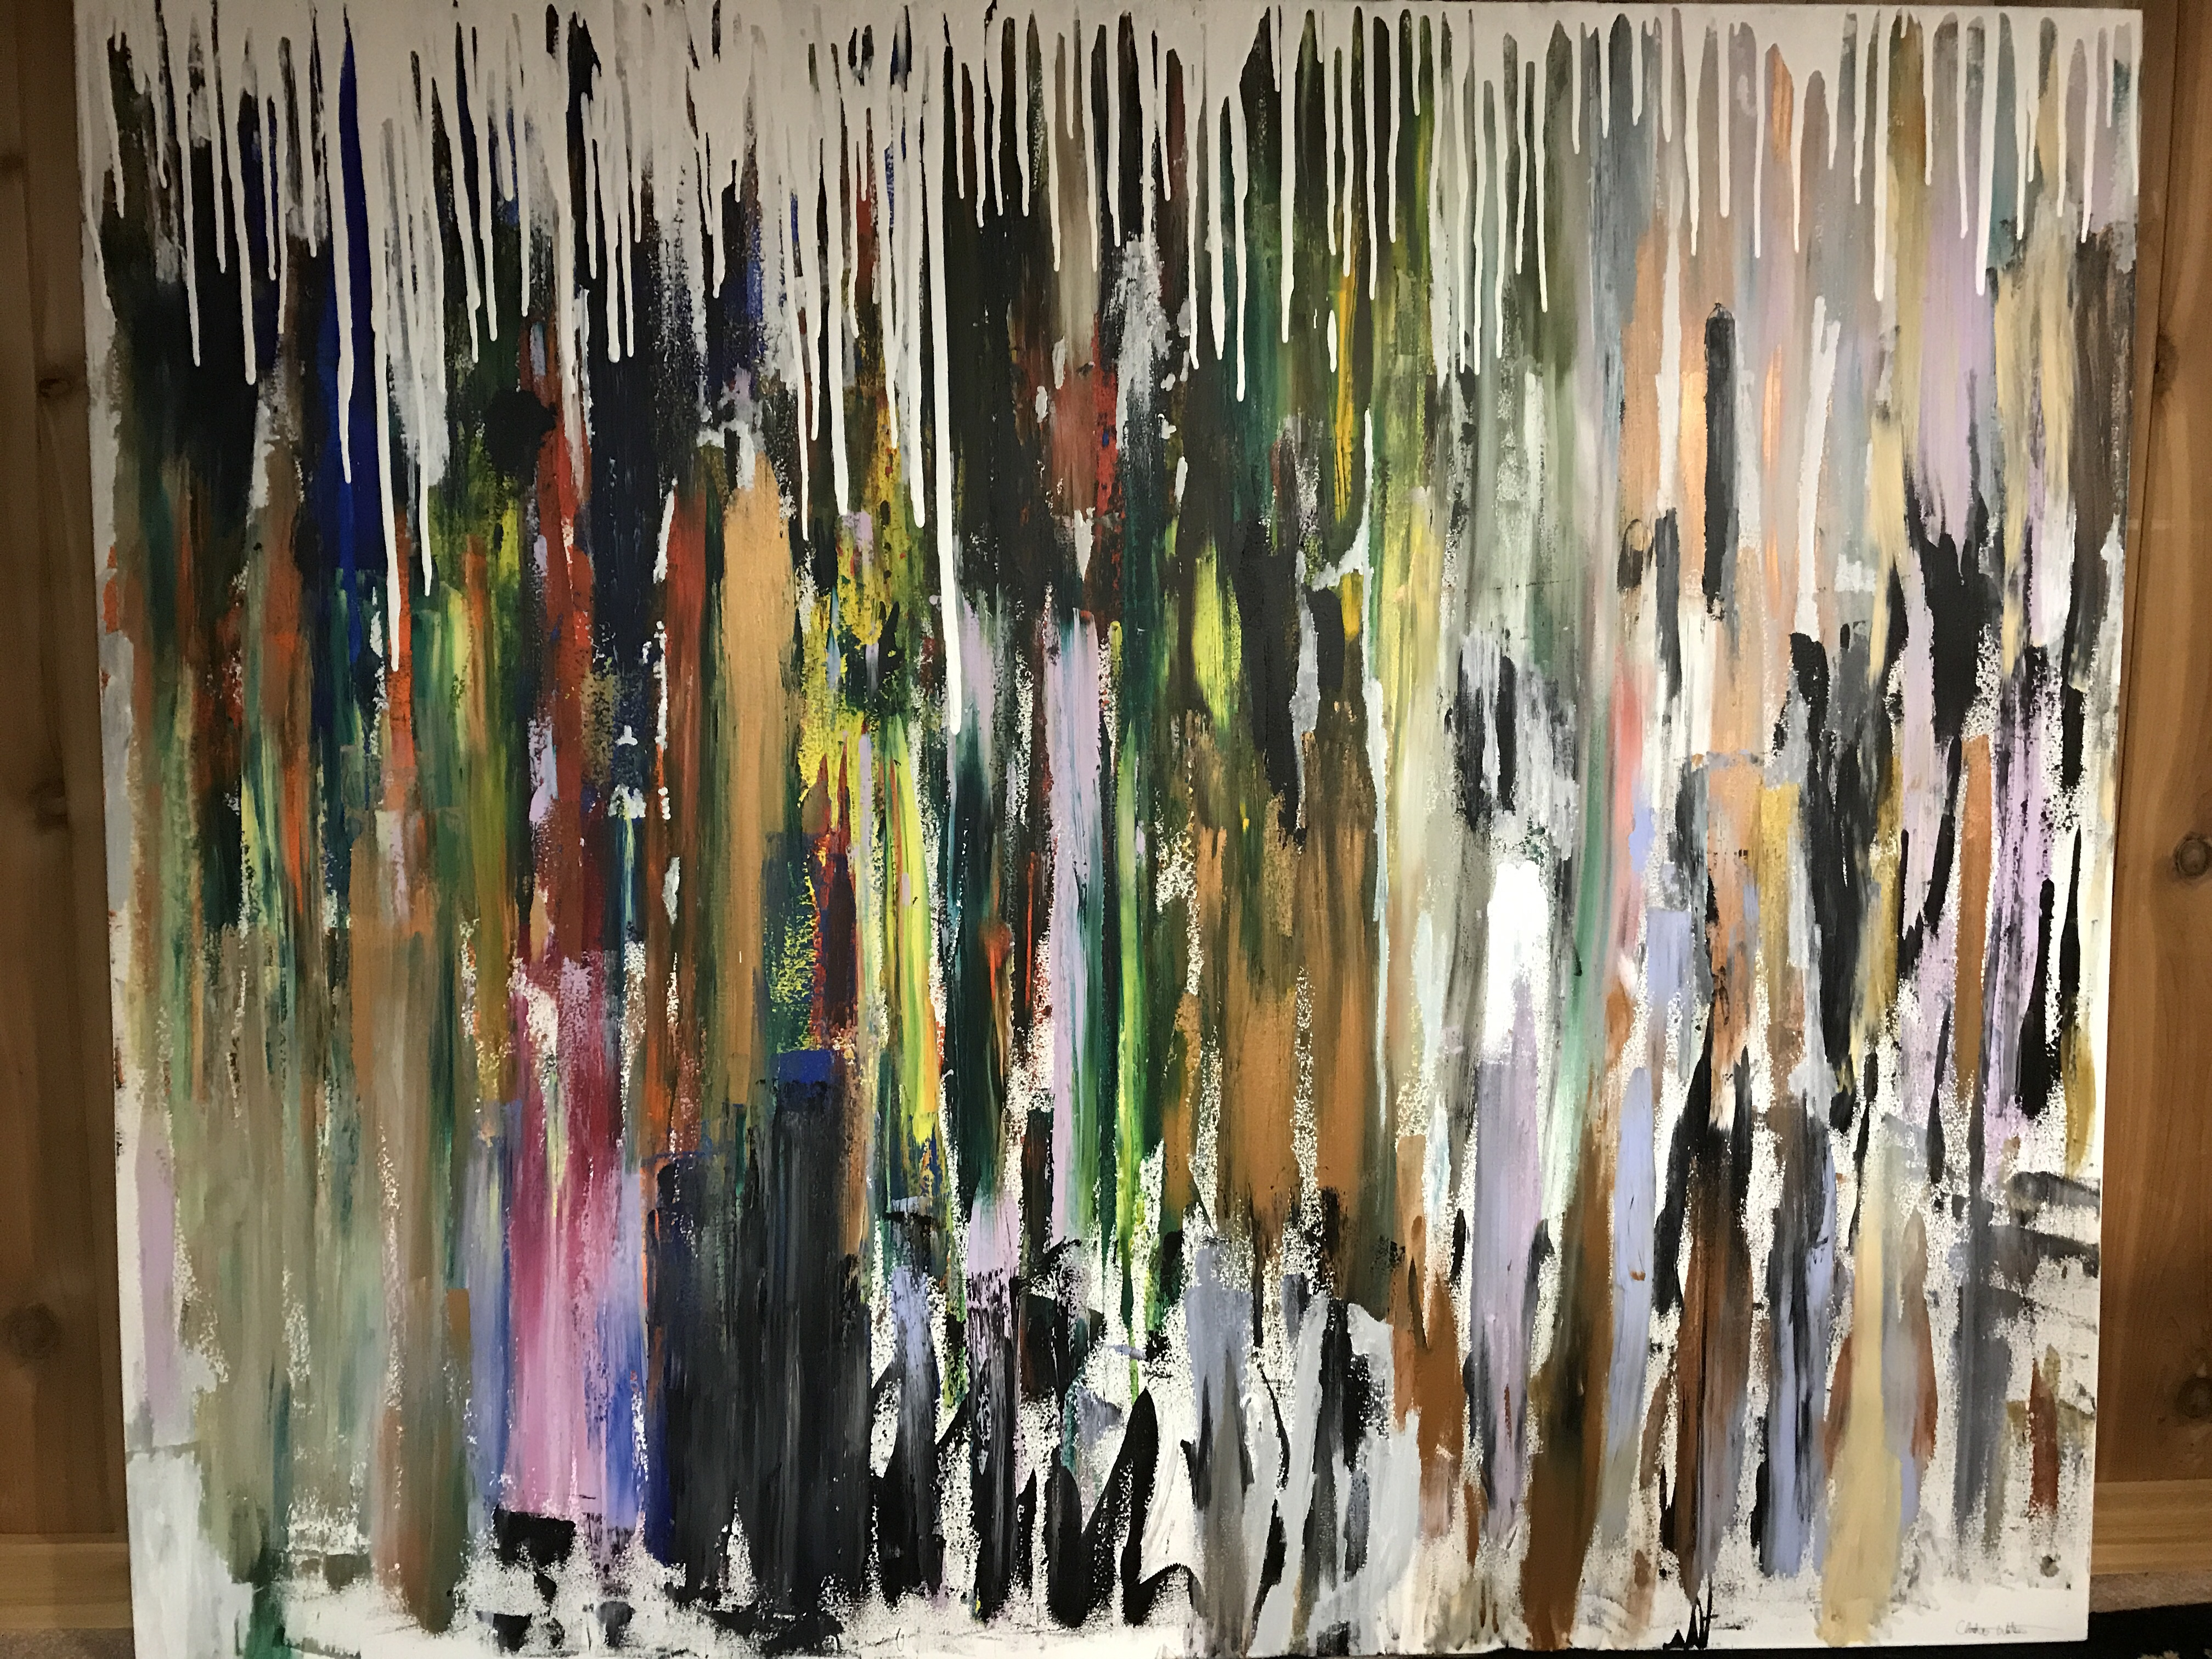 Winters End artwork by Christian Watson - art listed for sale on Artplode